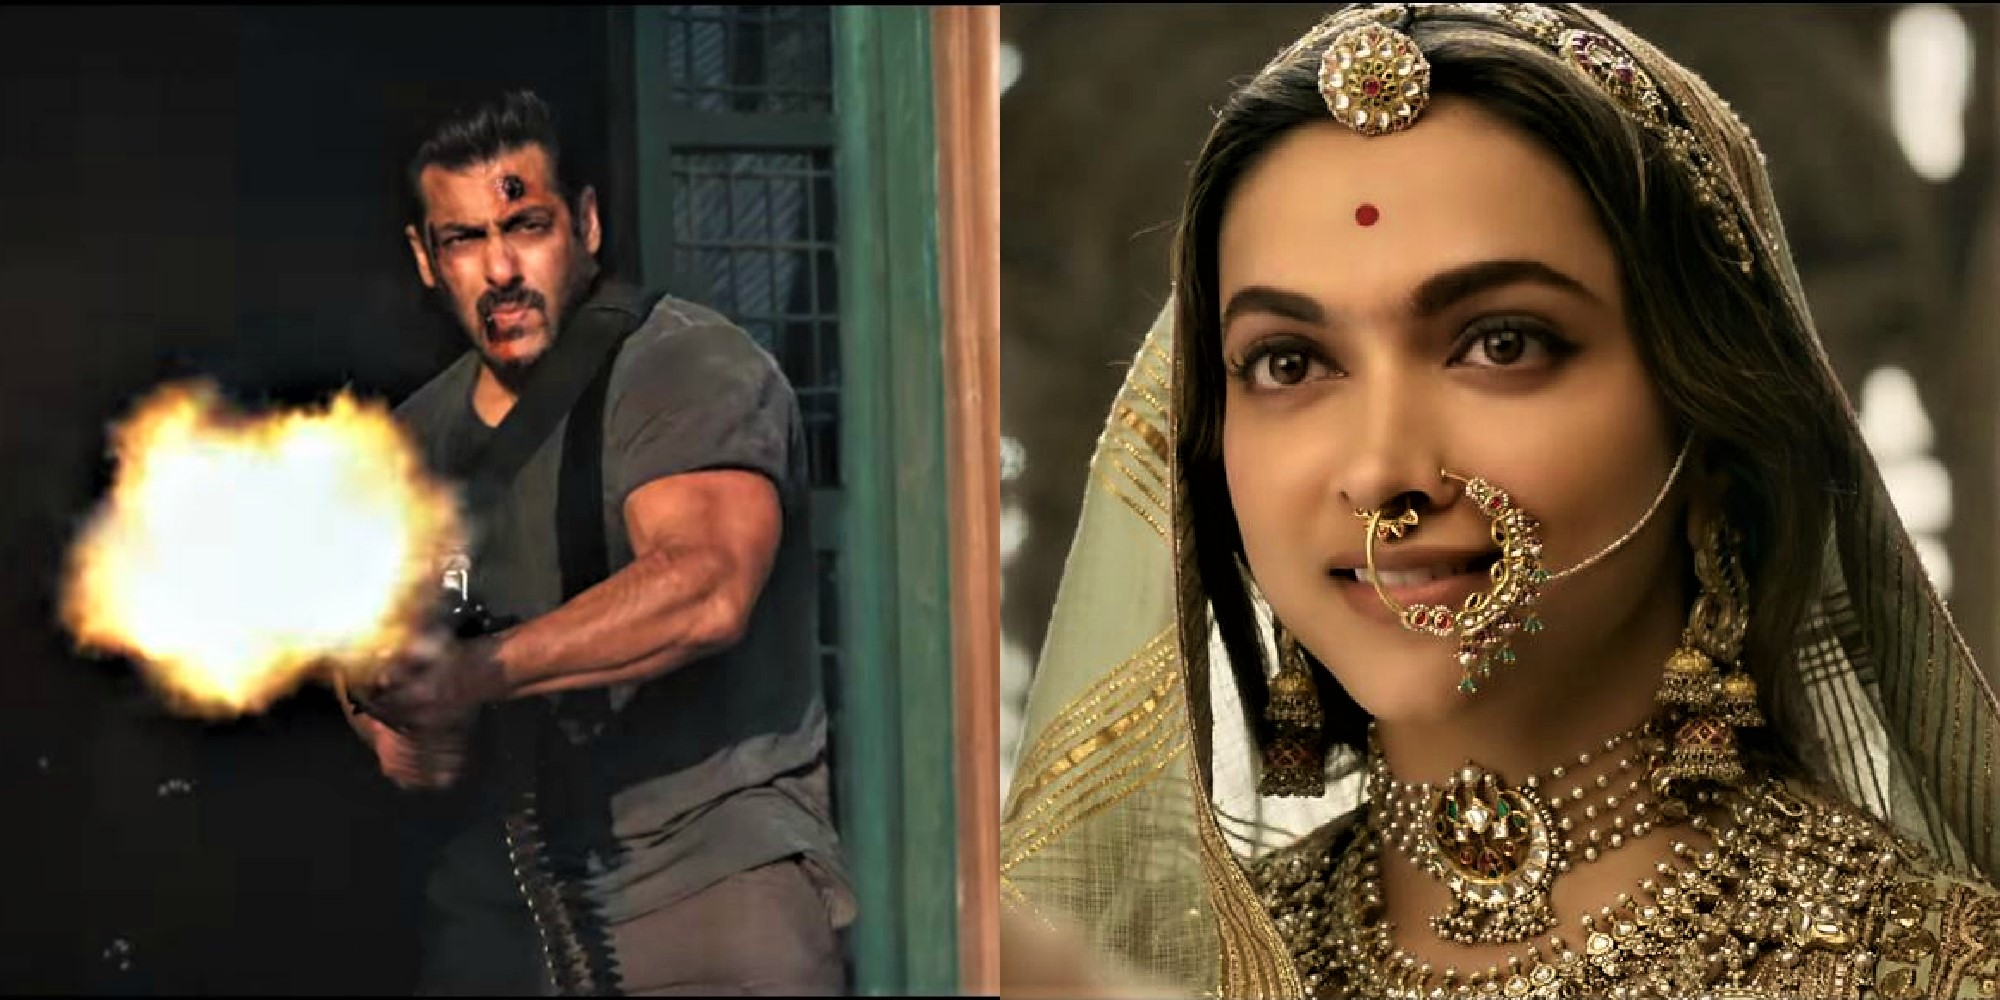 Deepika Padukone And Salman Khan Movie Padmavati: Salm...